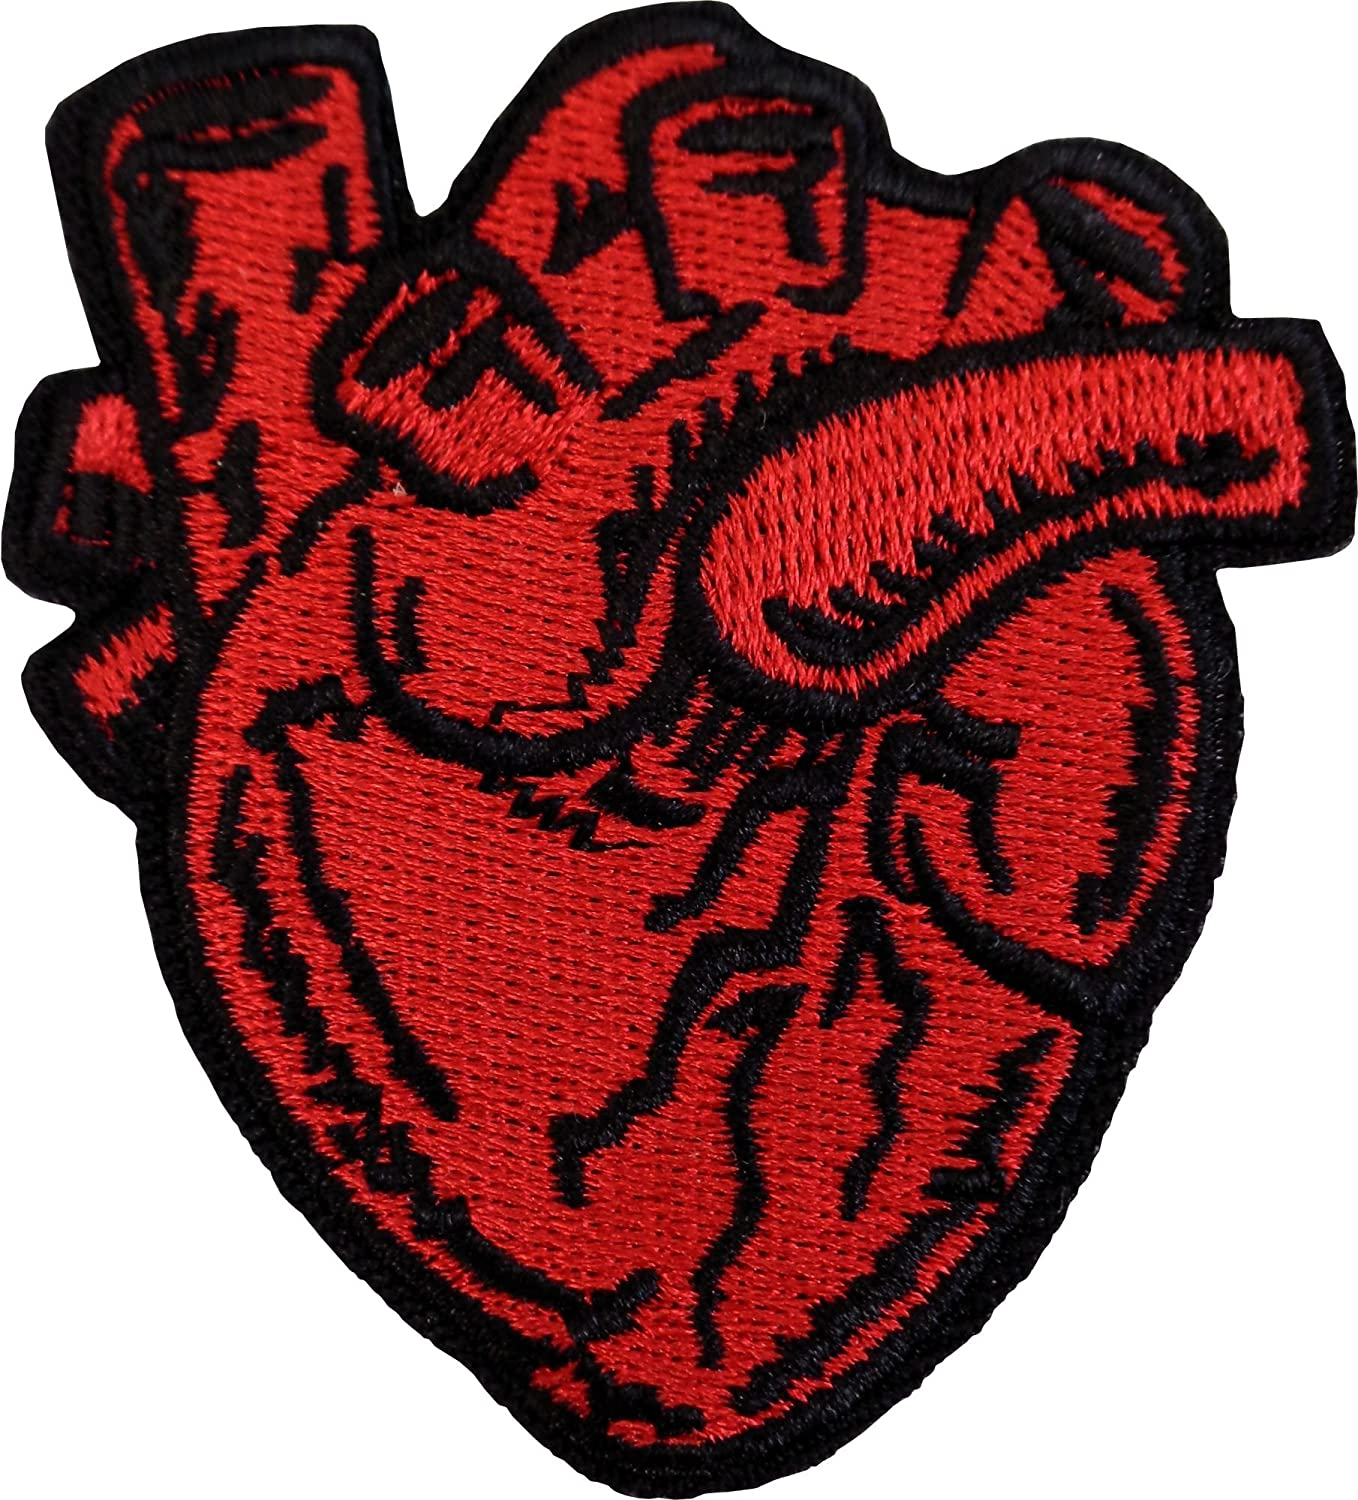 X-Ray Anatomical Heart Patch Embroidered Badge Iron On Sew On Emblem ZEGIN 4337020631